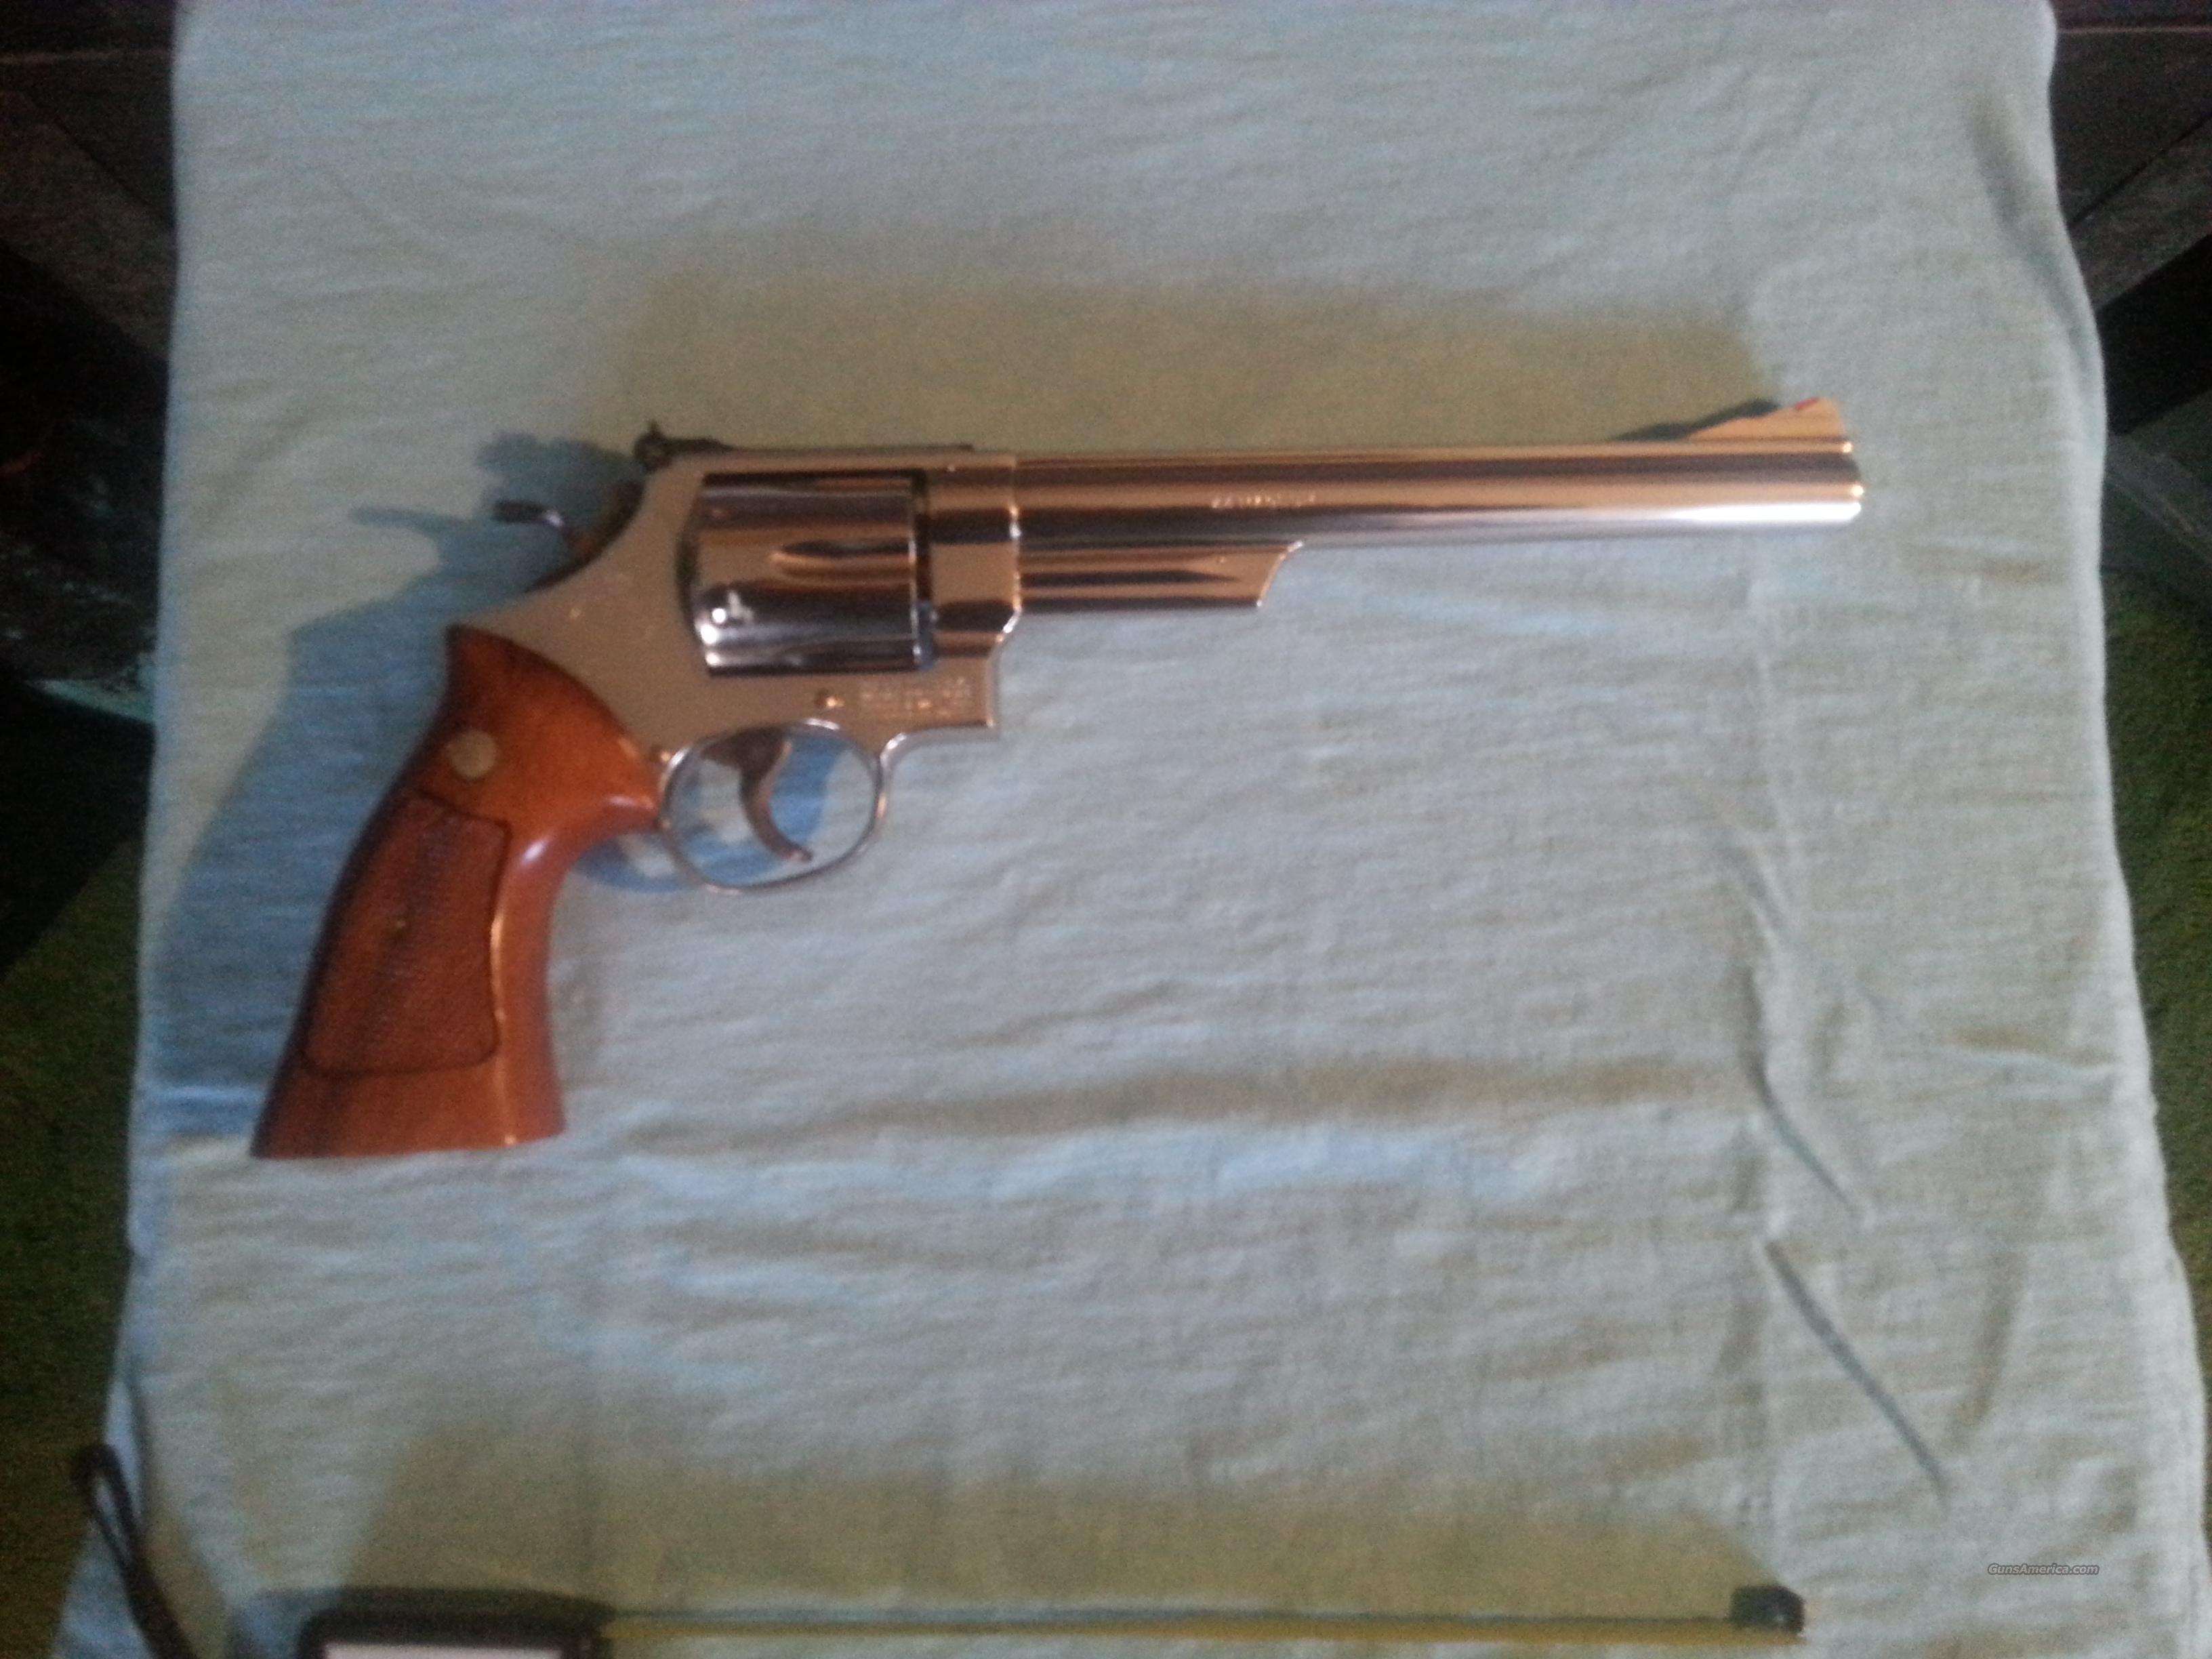 model 29-2 Nickel * 3/8 inch barrel.  Guns > Pistols > Smith & Wesson Revolvers > Full Frame Revolver